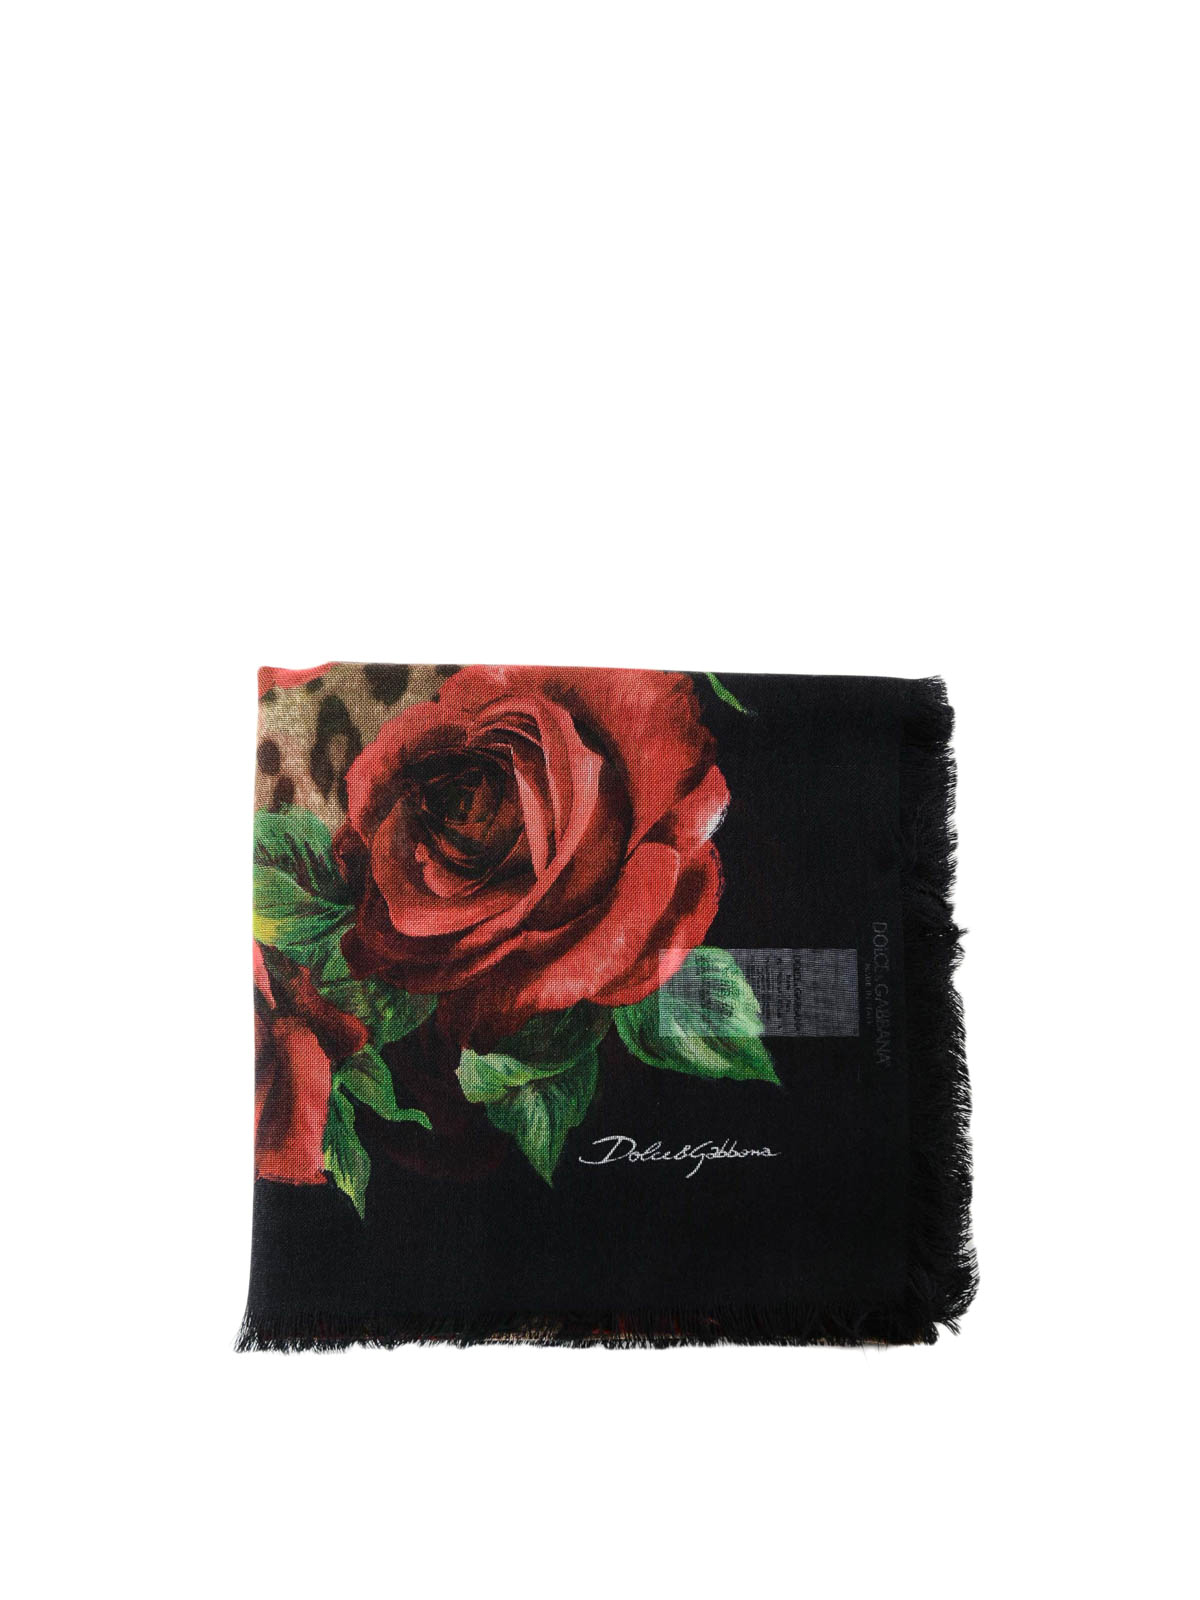 8387d6db DOLCE & GABBANA: scarves - Leo and rose printed cashmere and silk scarf